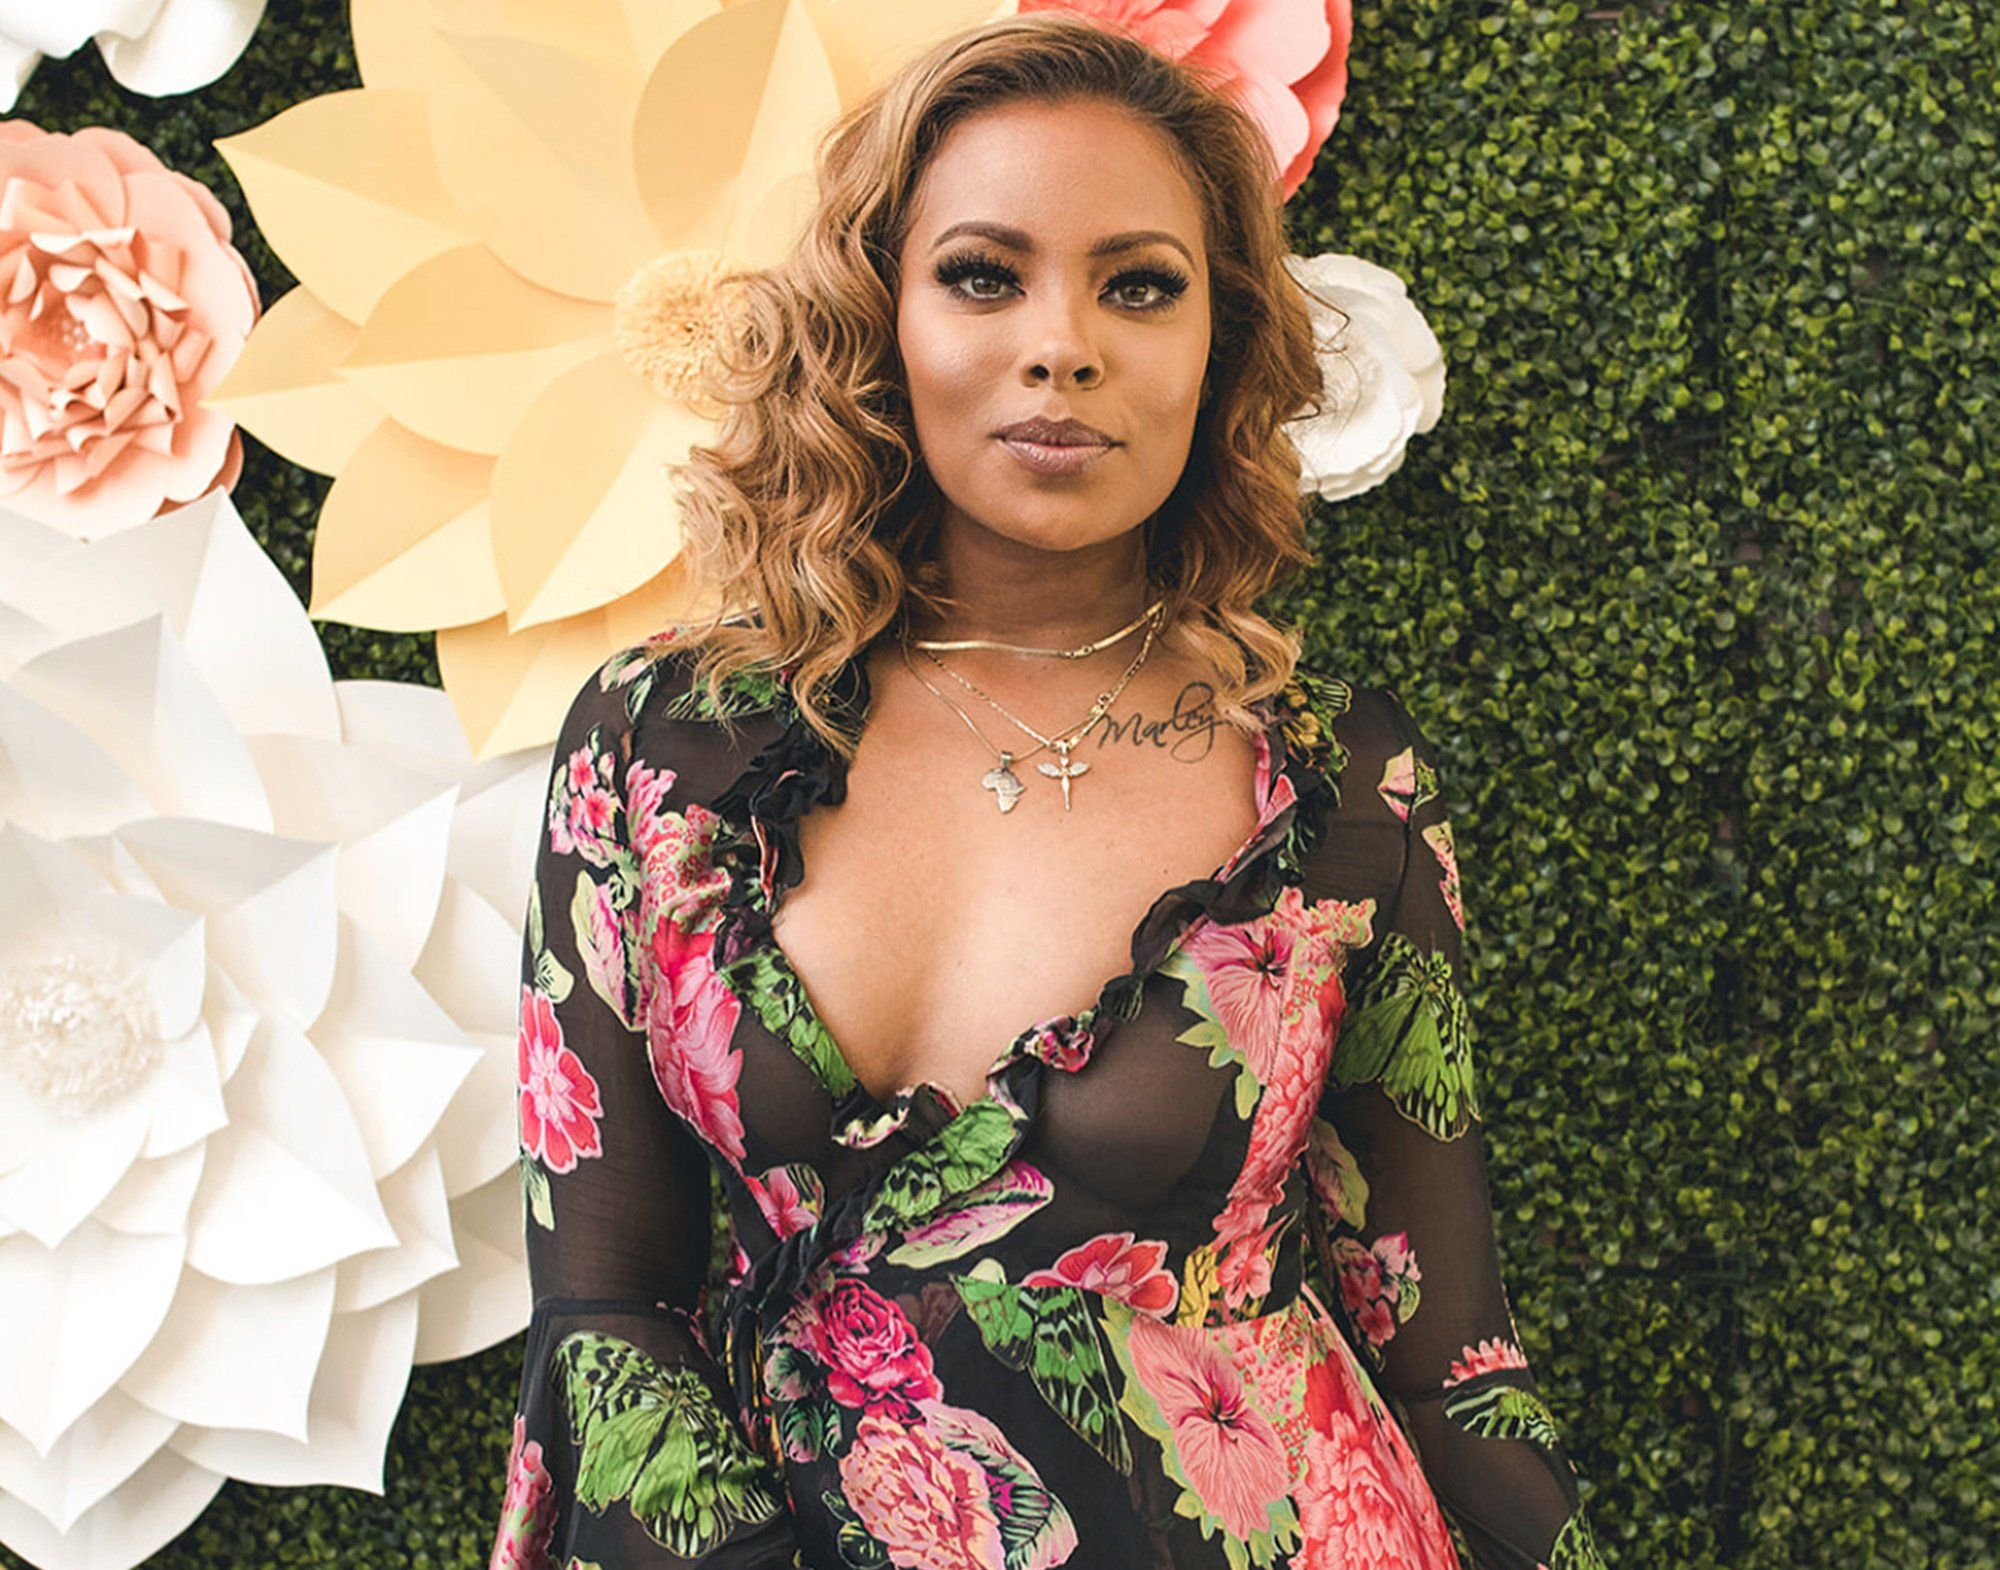 Eva Marcille Has Fans Freaking Out And Asking Her To Stop The NeNe Leakes Backlash